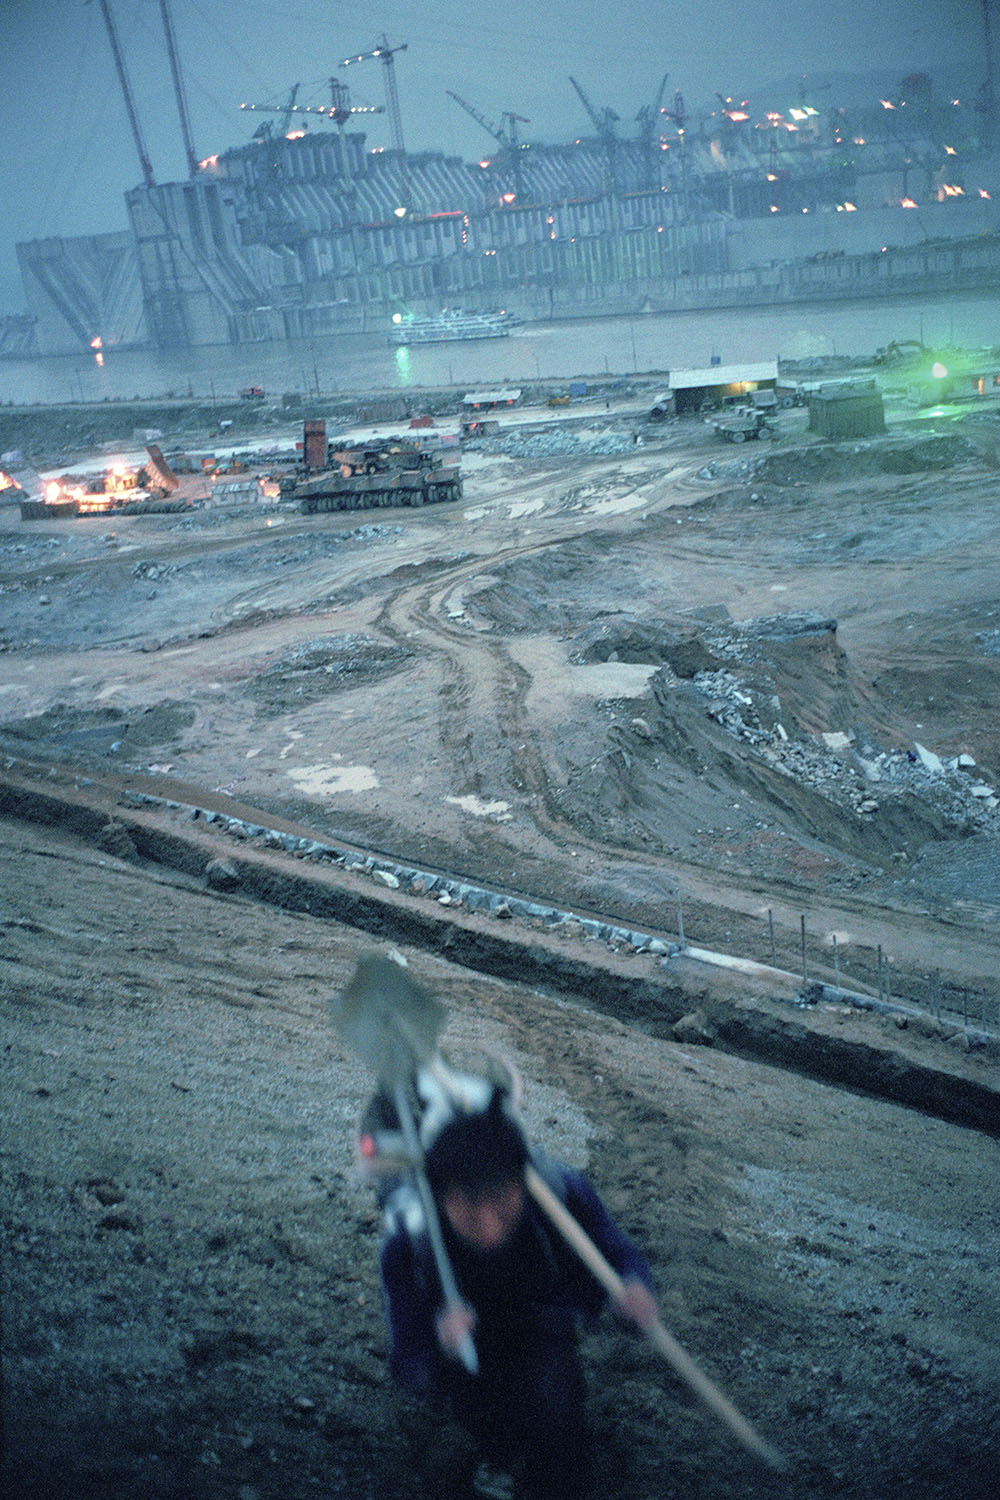 A worker returning home after a day's work at the Three Gorges Dam construction site. In the distance, a three-storey boat is dwarfed by the gigantic 1.3 mile wide construction which has nearly blocked off the river. Although the final completion date for the dam is not until 2009, it has been operational since 1st June 2003.